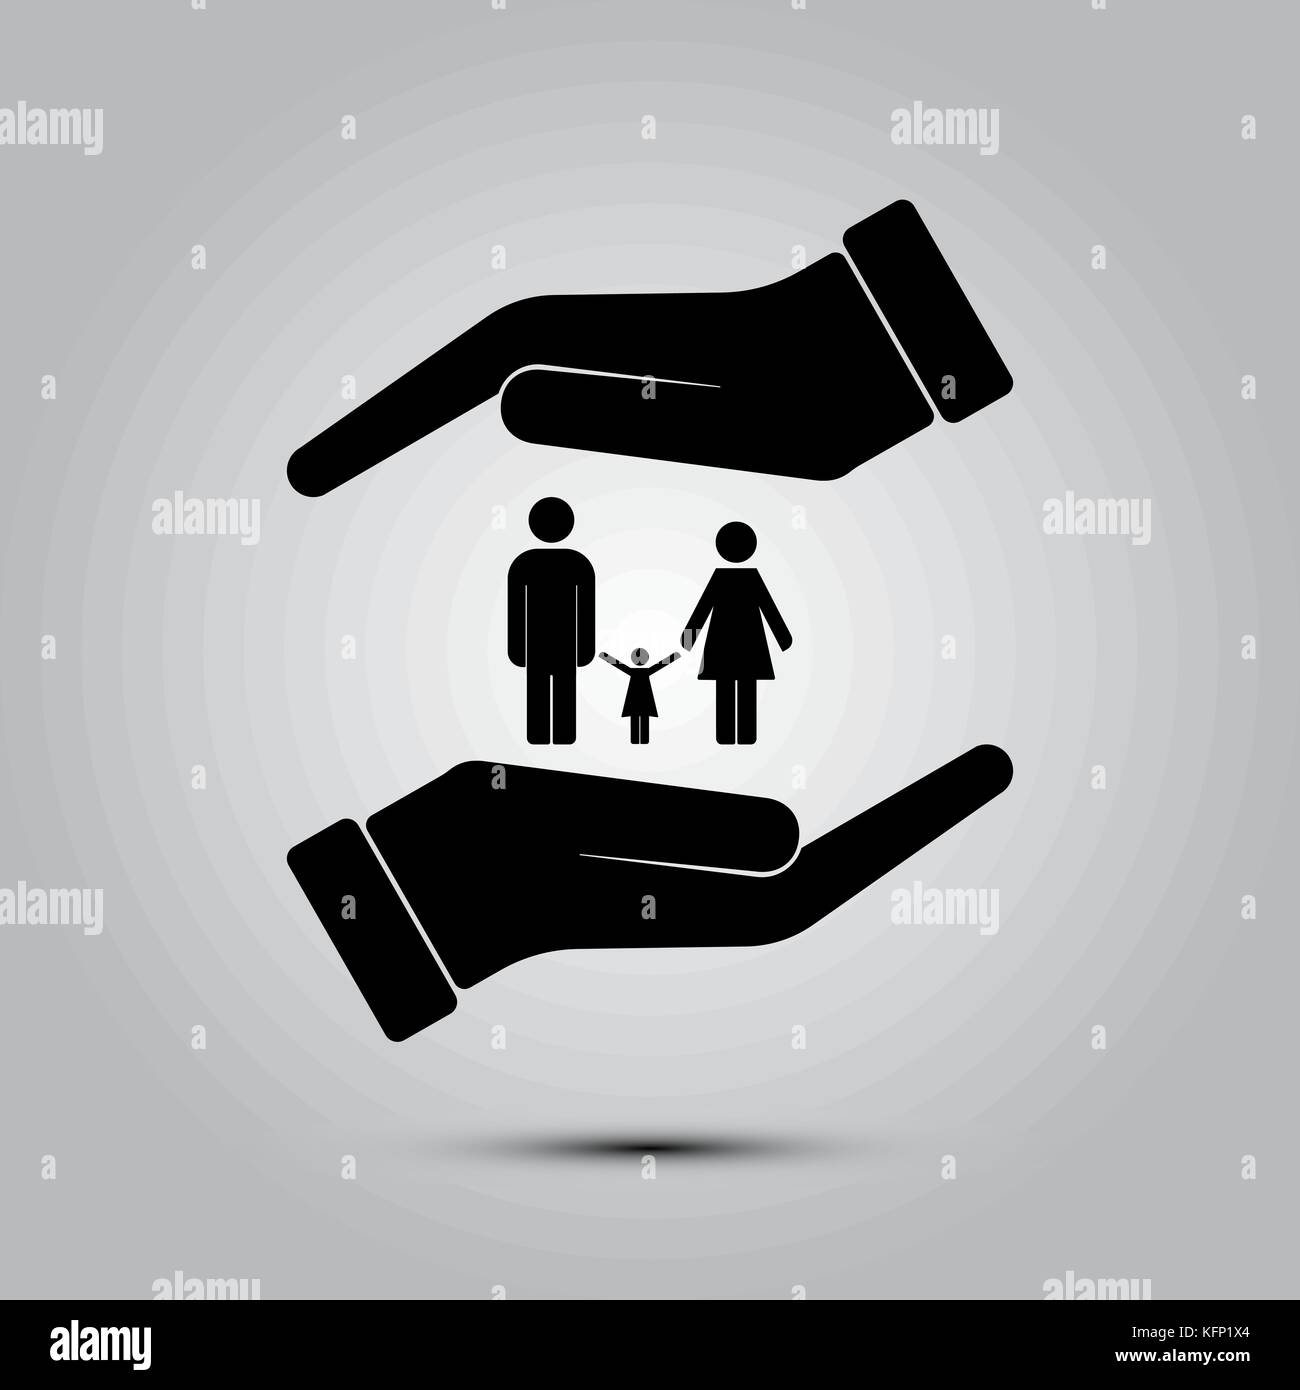 Family life insurance sign icon, vector illustration. Flat design style - Stock Vector